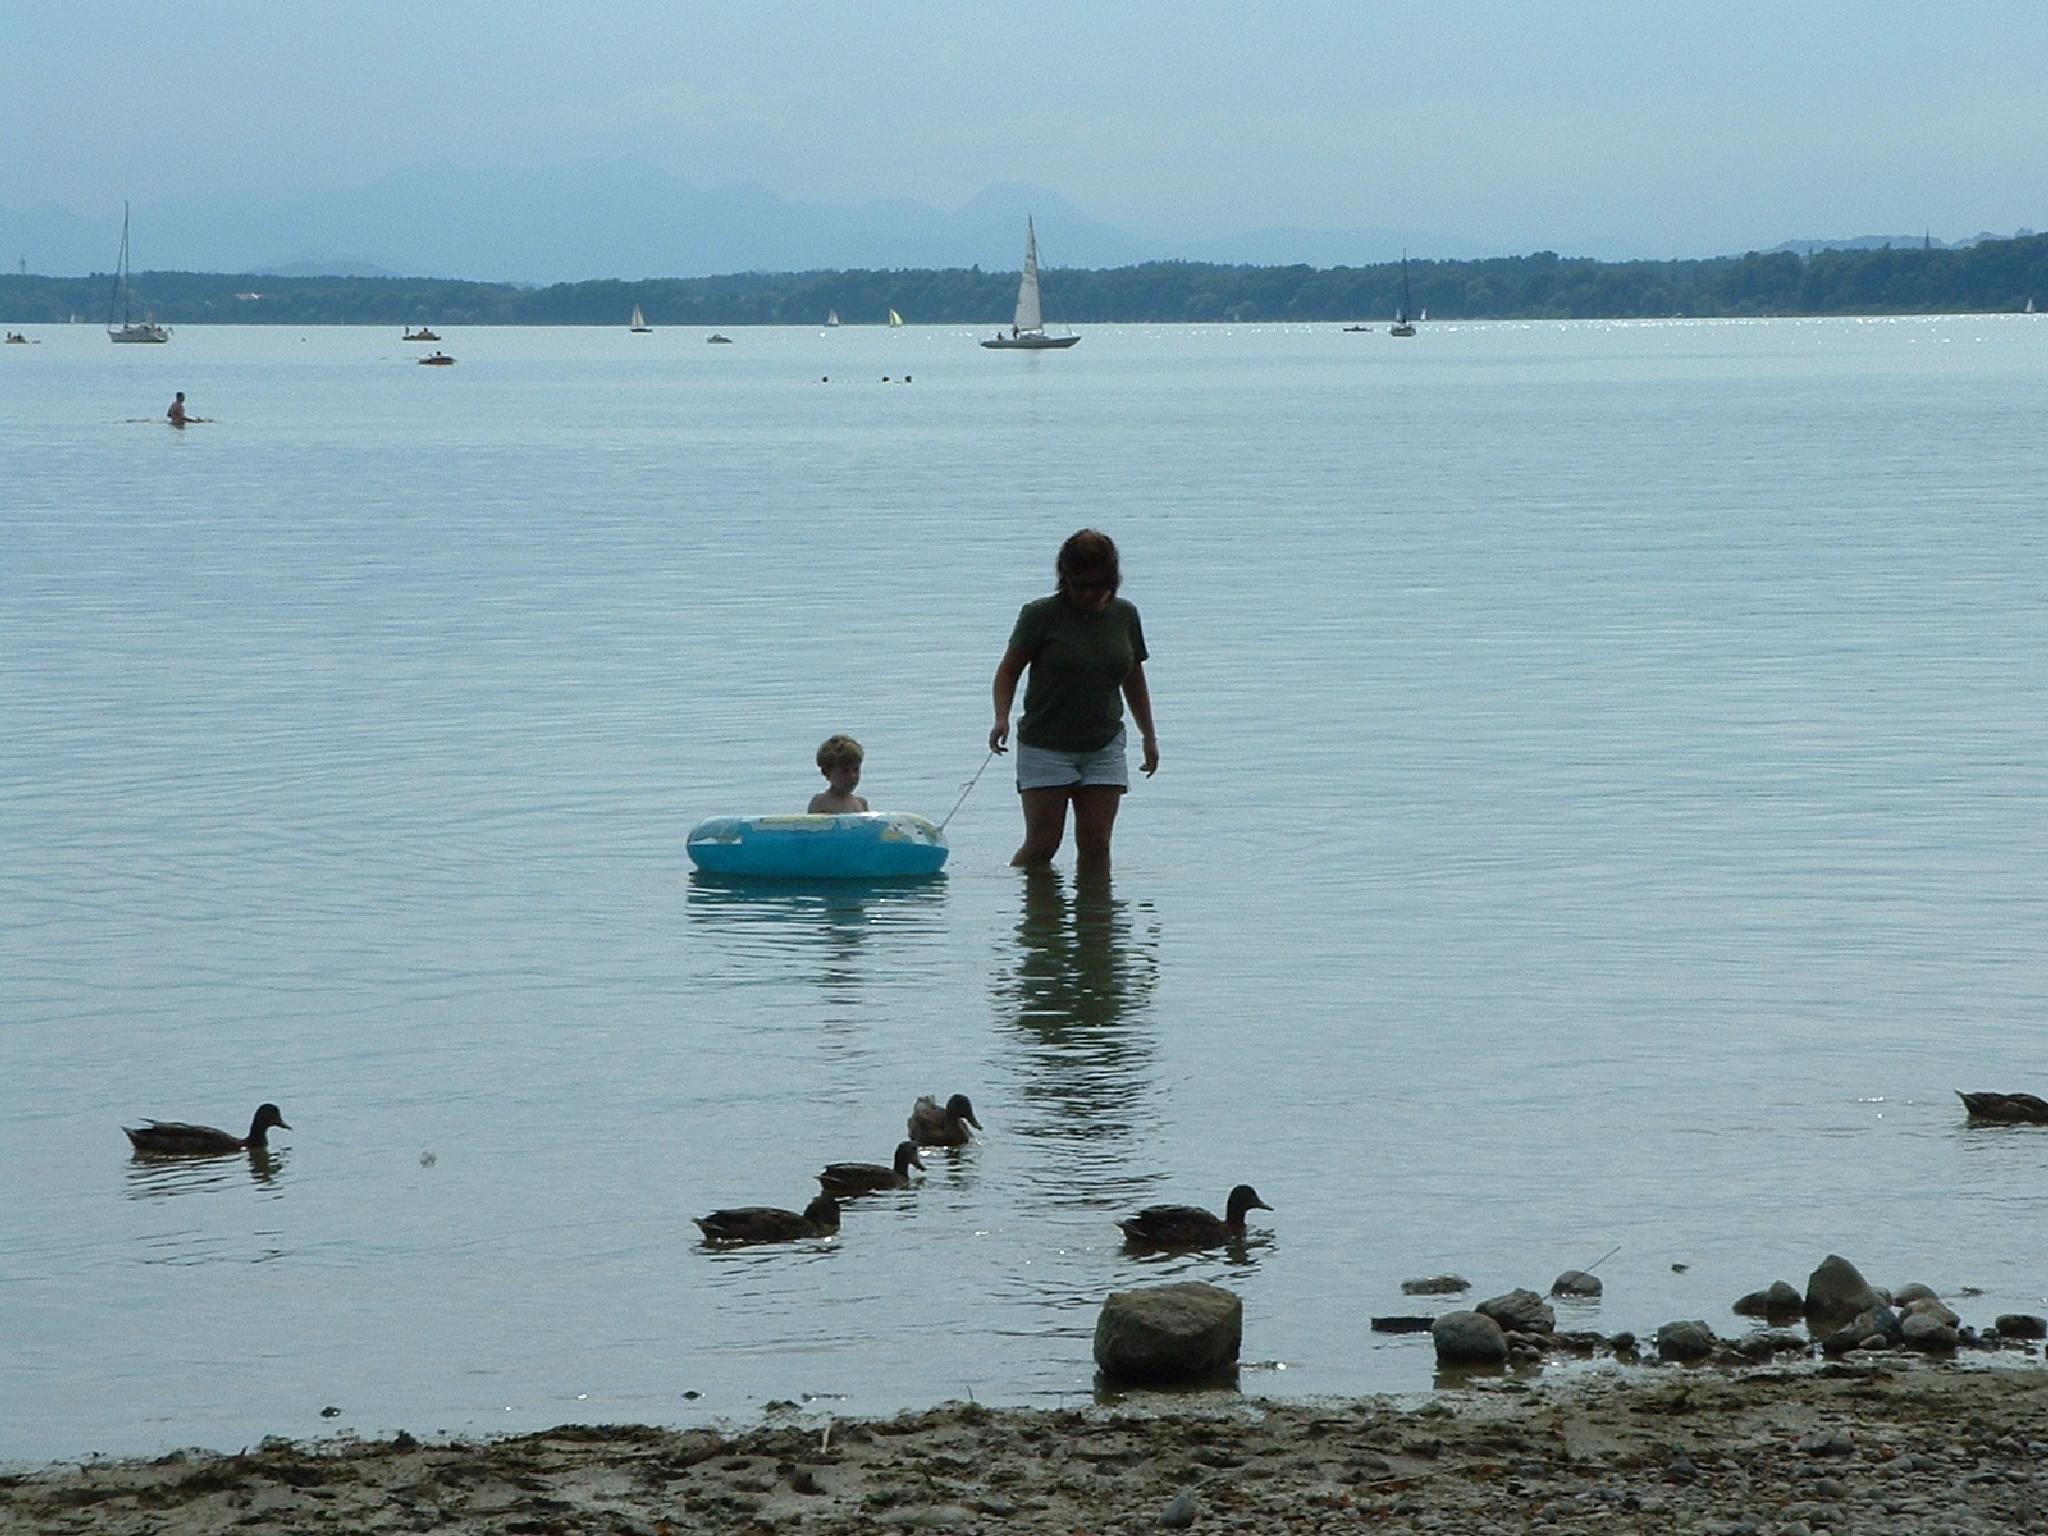 Boating on Chiemsee by andy.morrow.315